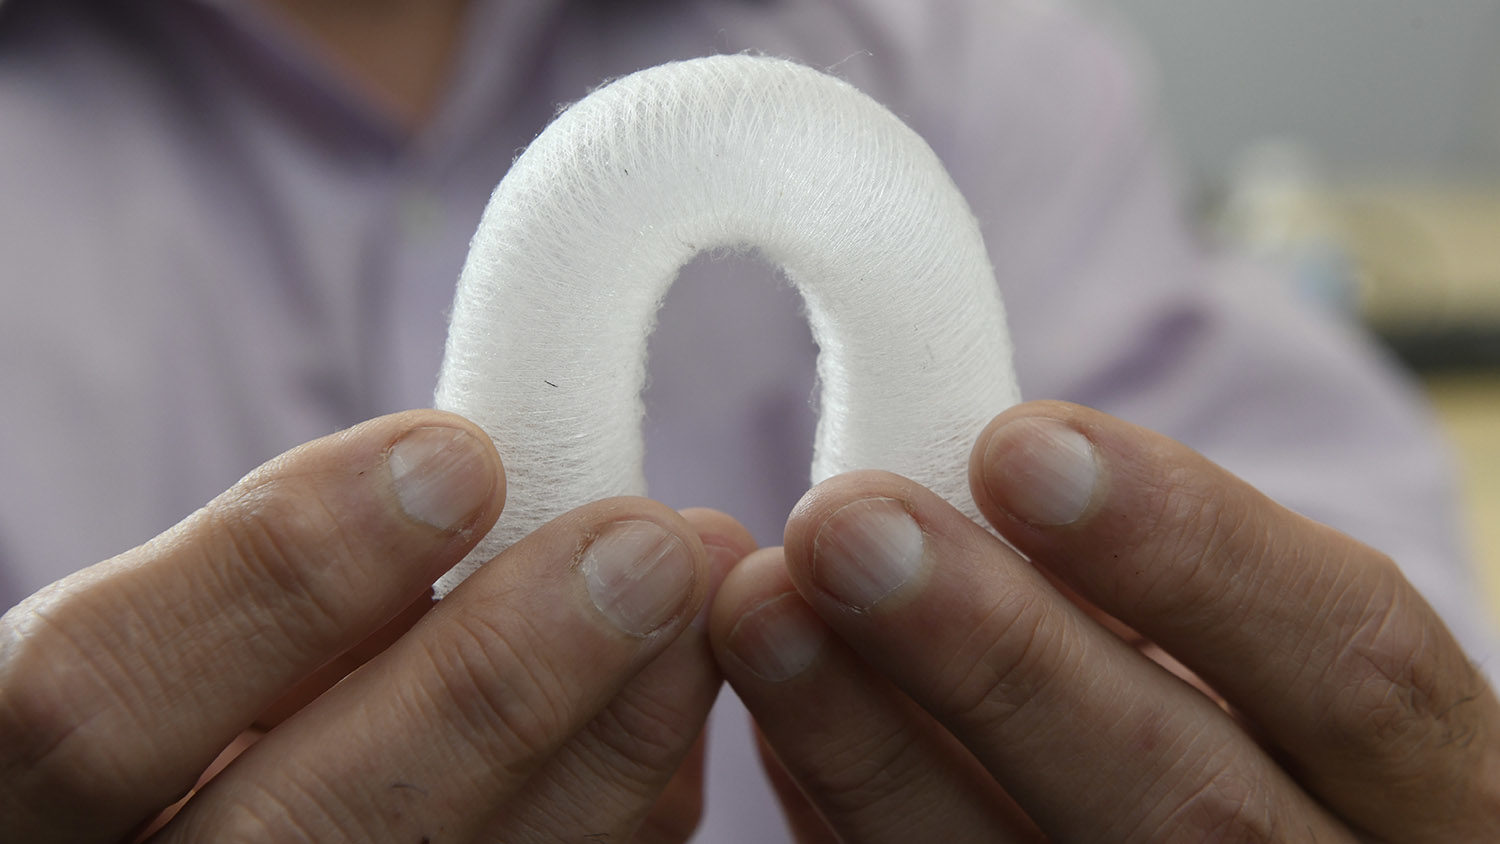 A 3D printed aorta created using the device is flexed to show the unique properties and structure of the fiber printed output.